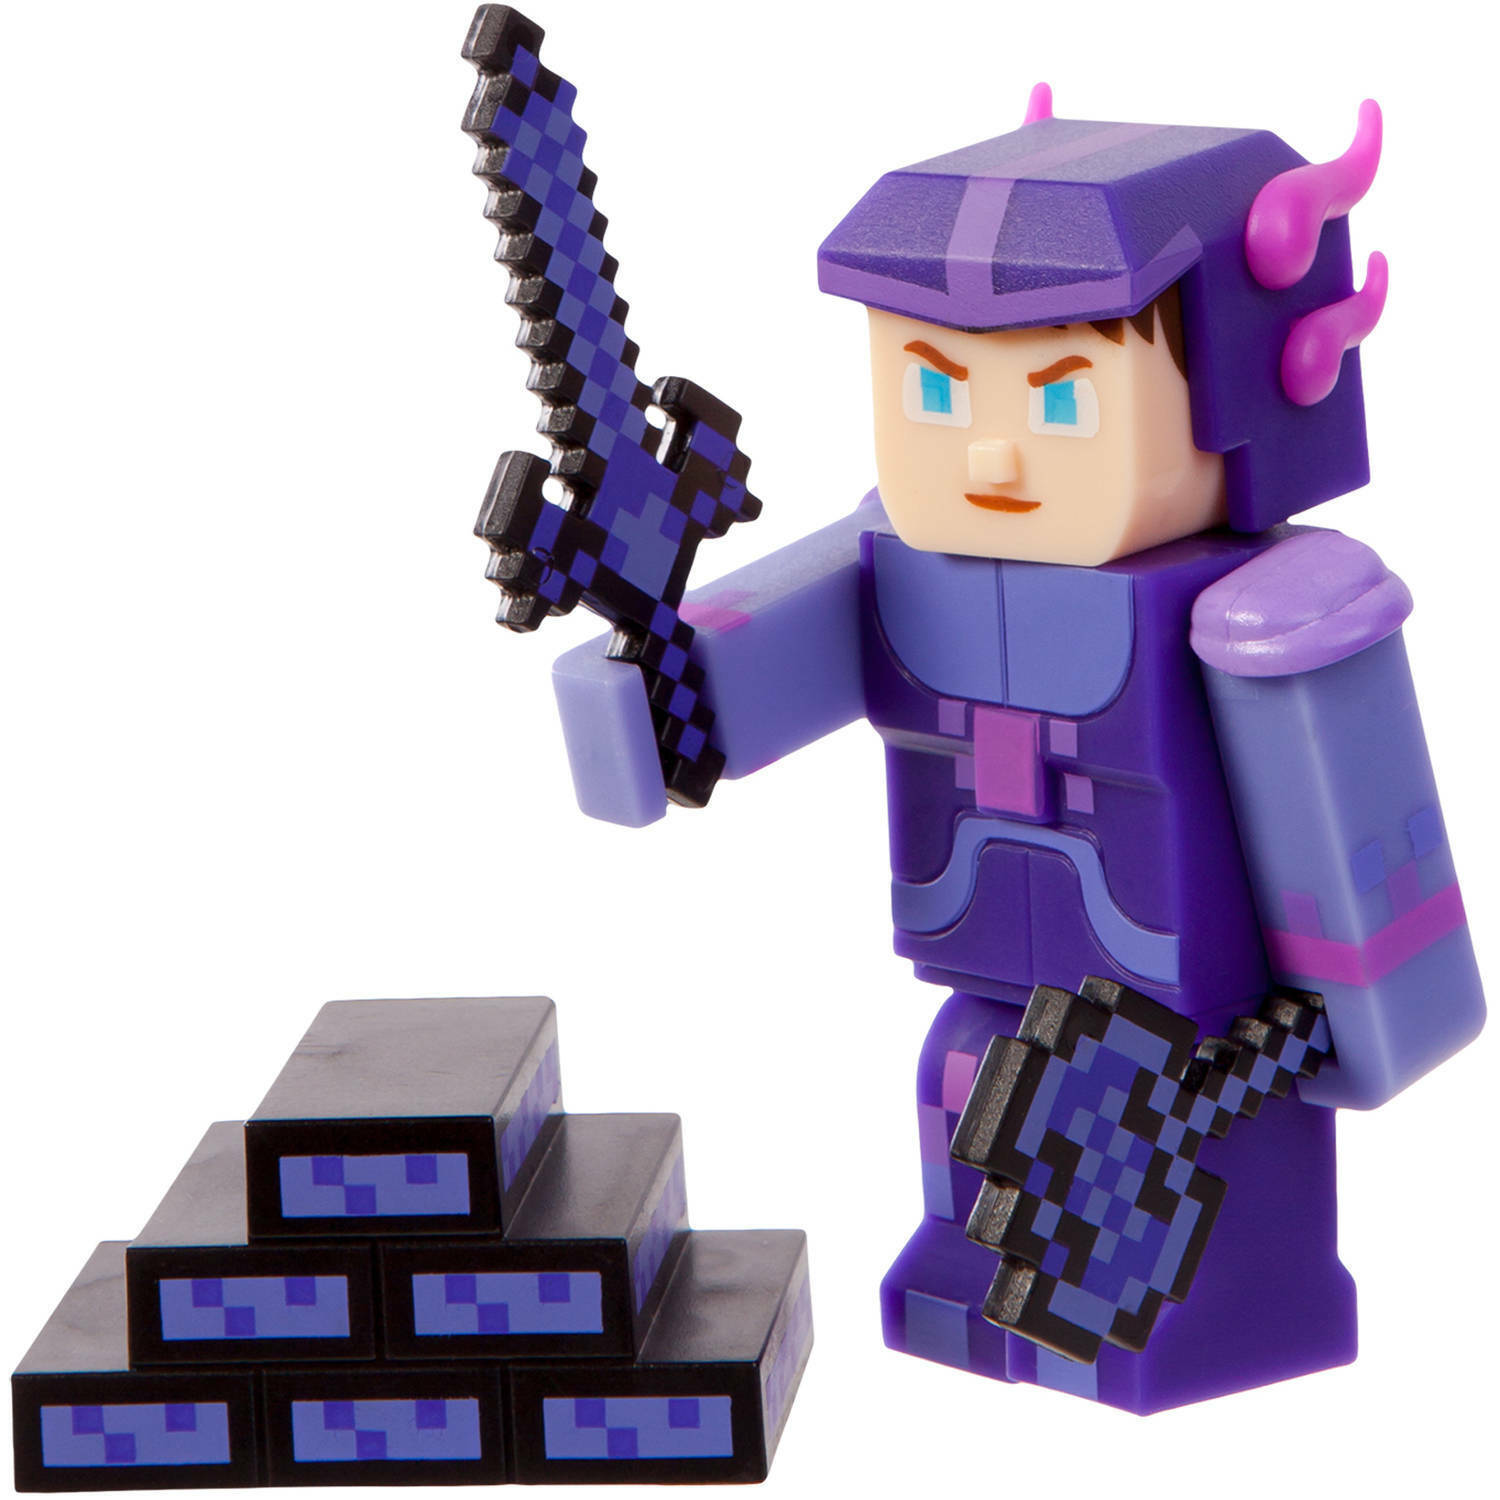 Terraria Deluxe Armor Collectors Pack 13815 Action Figures For Sale Online Ebay Little red riding hood wants to deliver pastries to her grandmother, who lives out in the middle of the. new in box terraria deluxe pack shadow armor action figure accessories